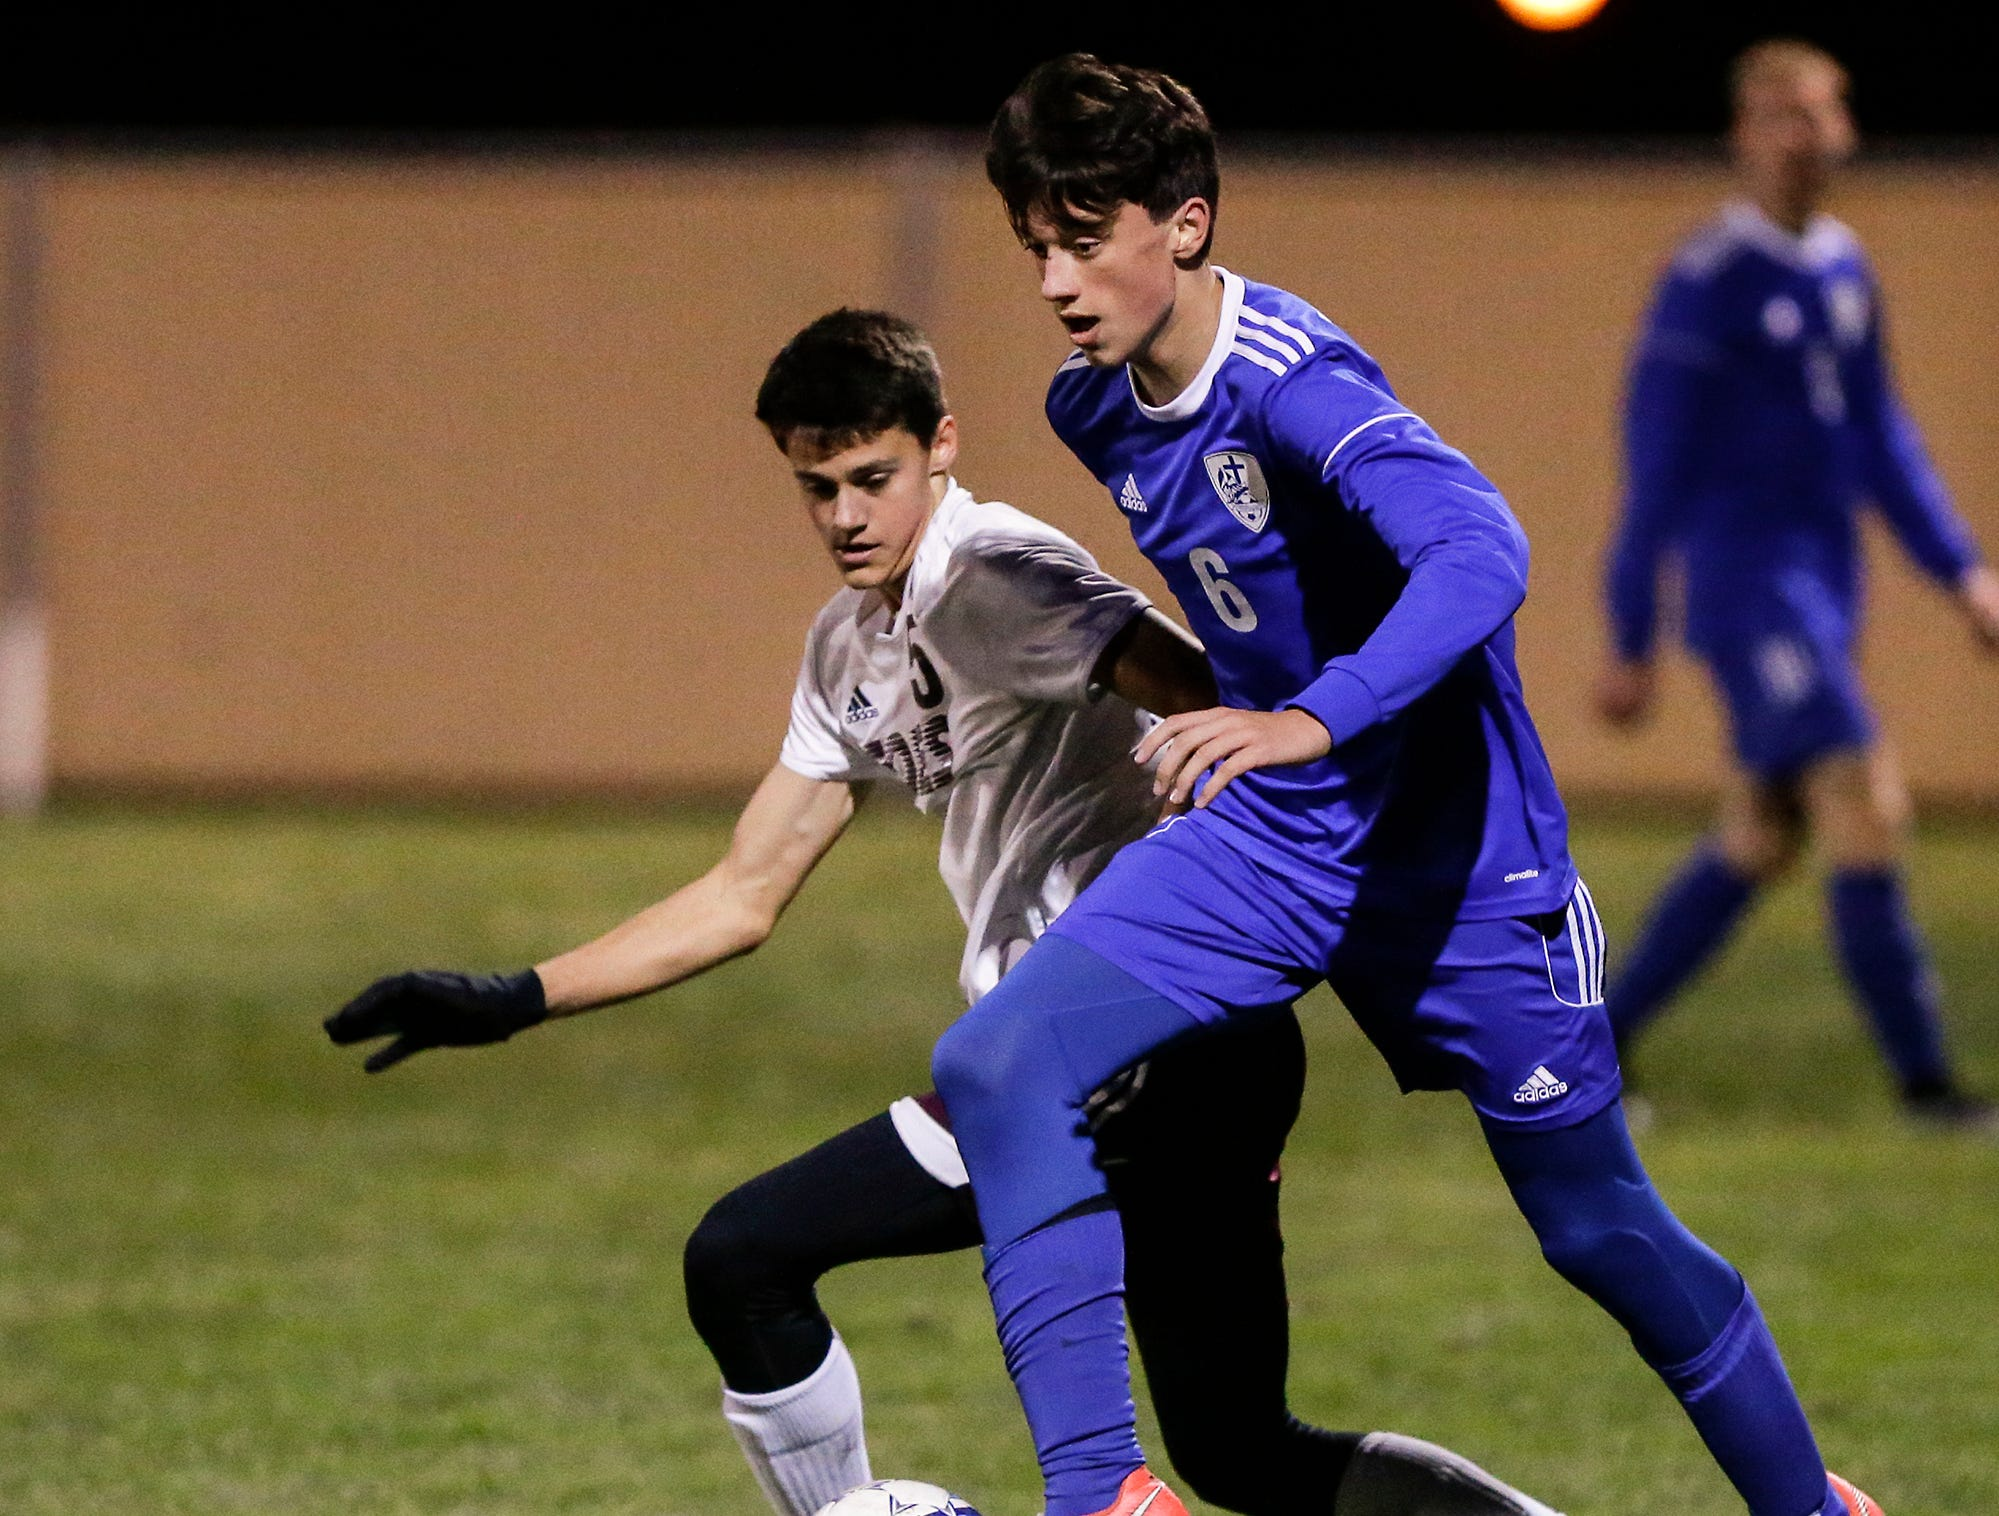 Winnebago Lutheran Academy soccer's Colin Knoblock and Omro High School's Eli Kilgas battle for the ball during their WIAA regional playoff game Thursday, October 18, 2018 in Fond du Lac, Wisconsin. Doug Raflik/USA TODAY NETWORK-Wisconsin